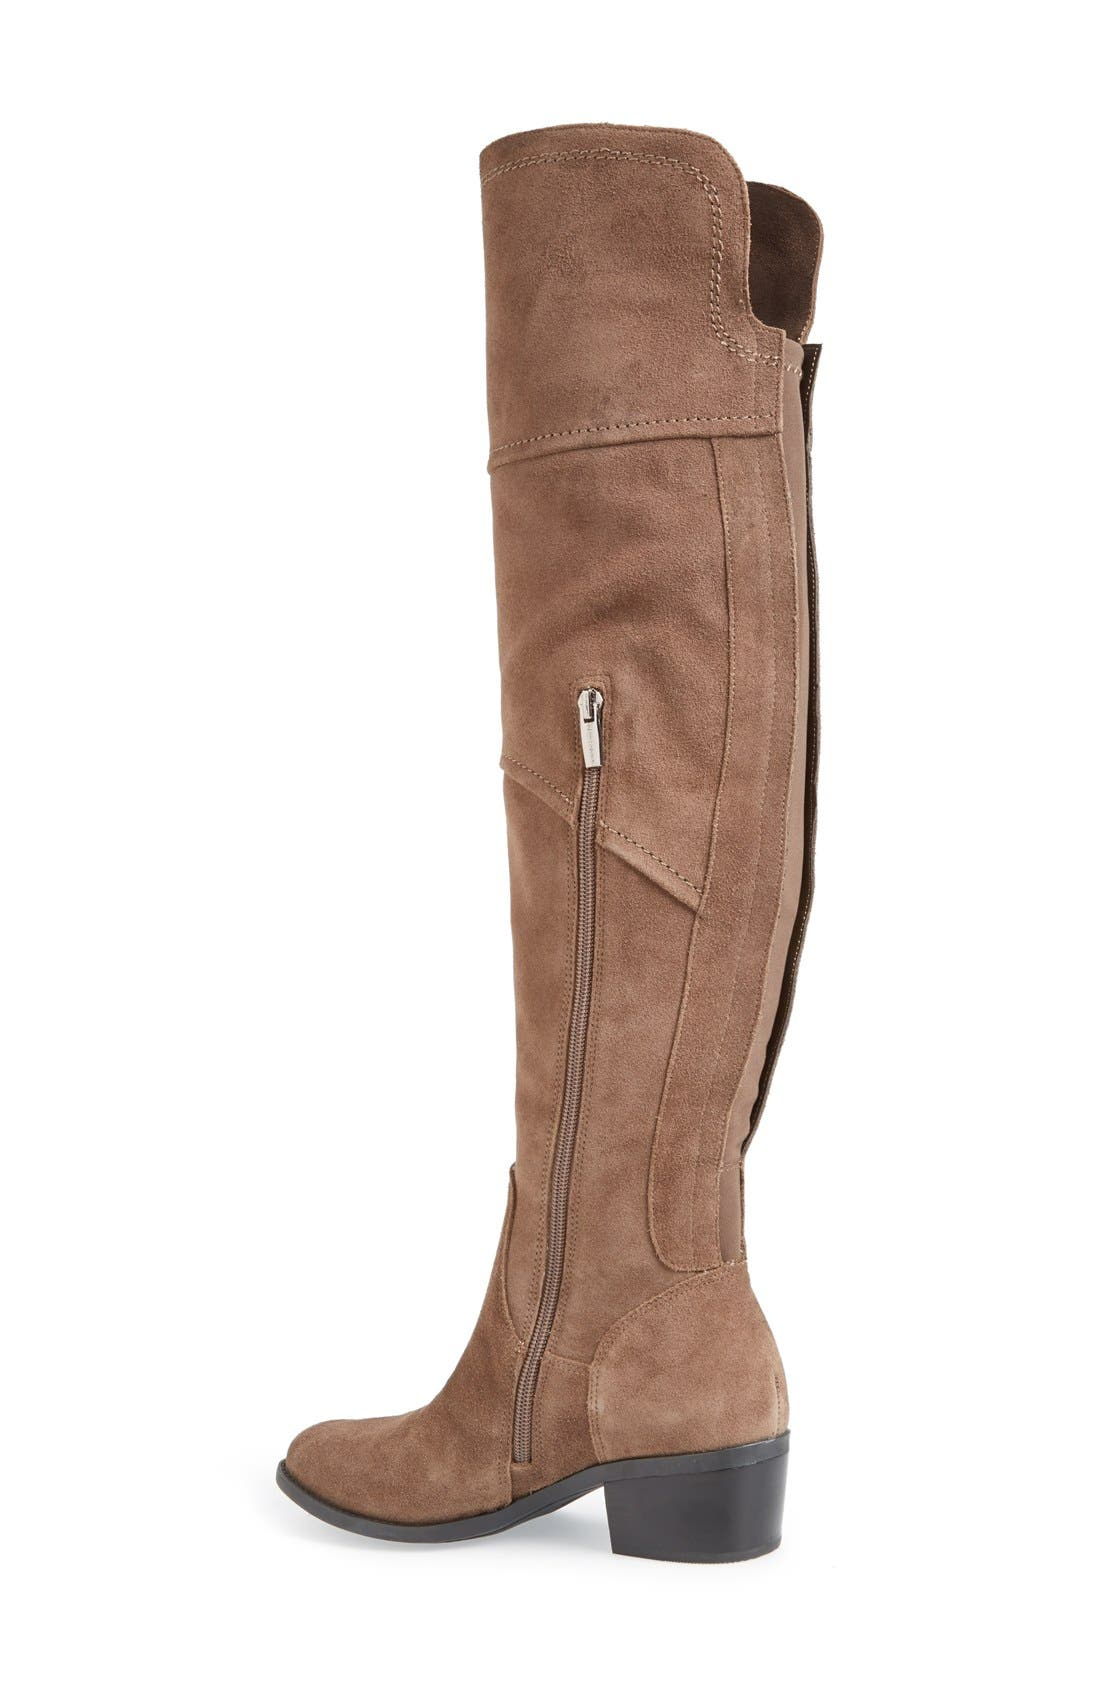 'Bernadine' Over the Knee Boot,                             Alternate thumbnail 2, color,                             Midnght Taupe Suede